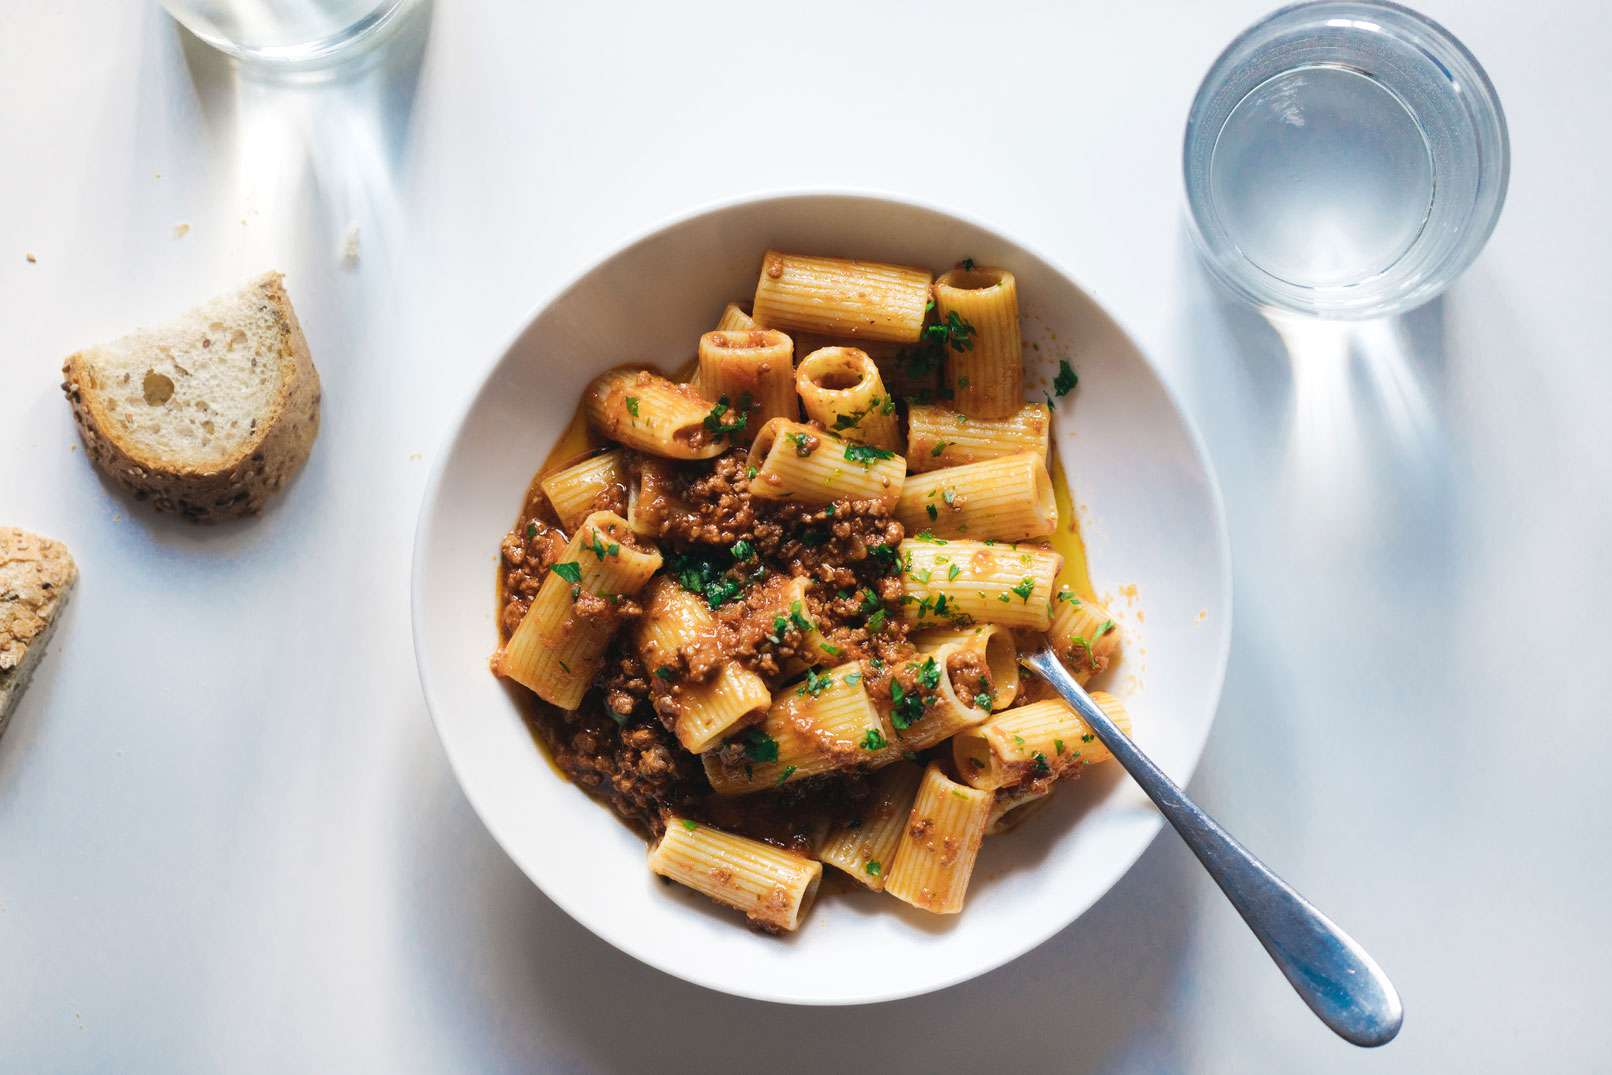 A bowl of pasta topped with Bolognese sauce